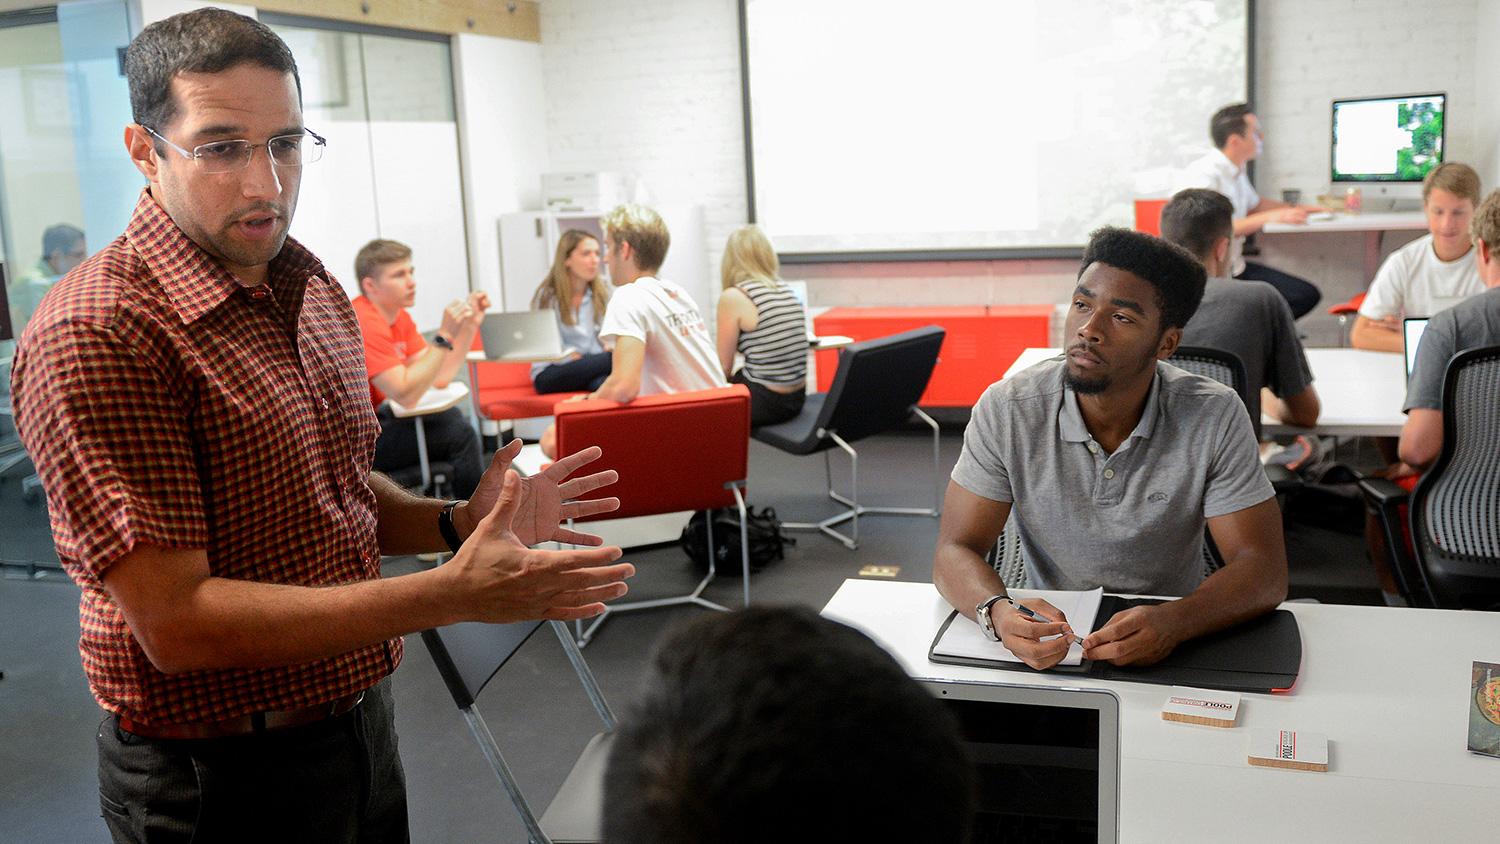 Assistant Professor of Entrepreneurship Nachiket Bhawe with students at the NC State Entrepreneurship Clinic at HQ Raleigh